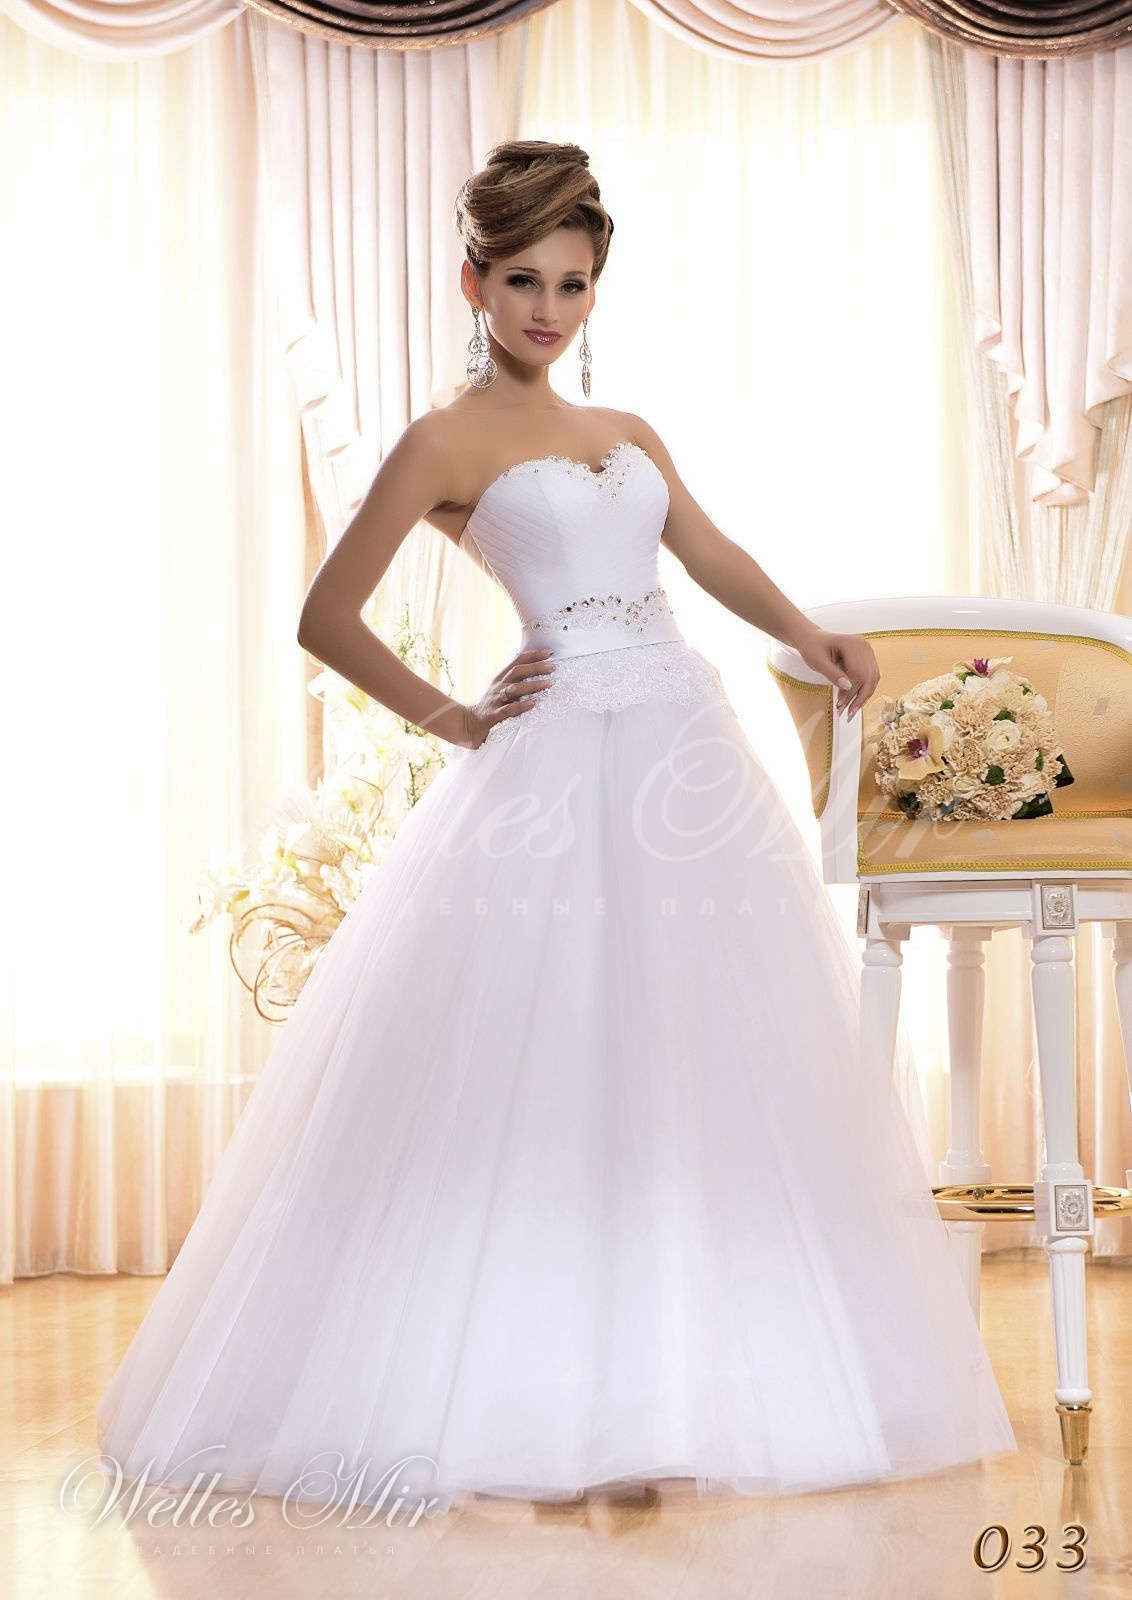 Wedding dresses 033